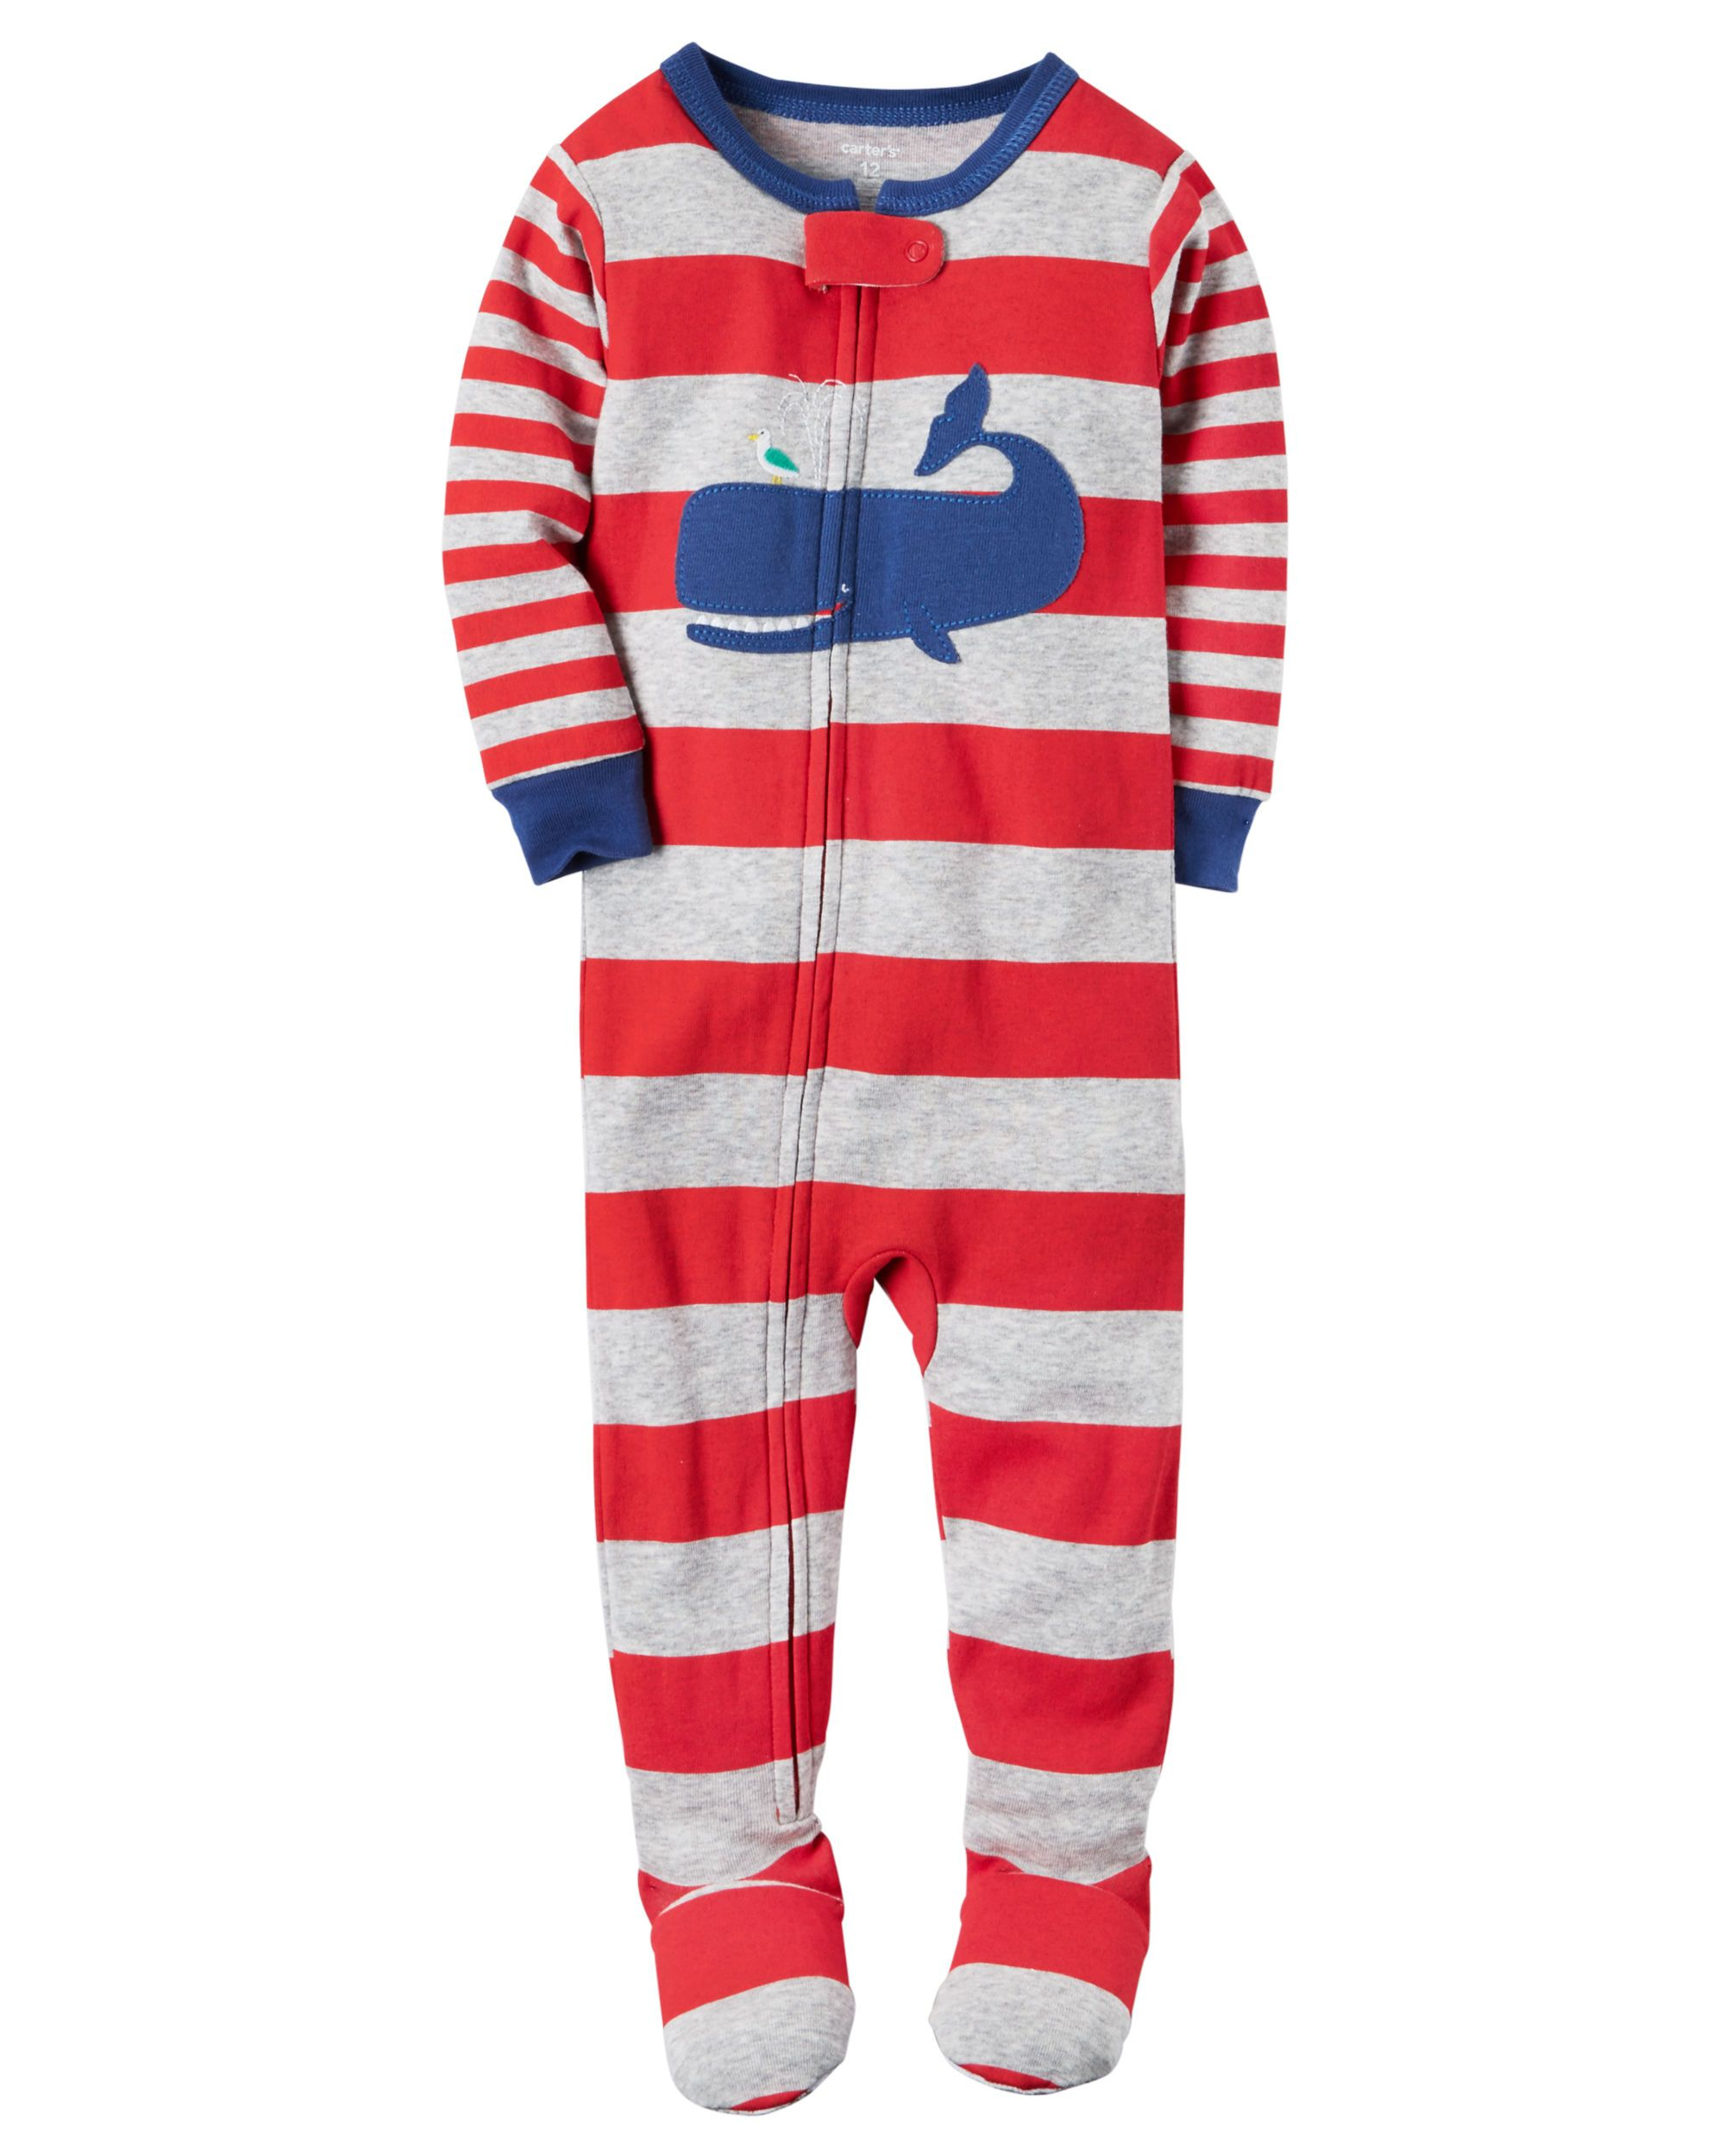 b97b393fcc97 1-Piece Snug Fit Cotton PJs